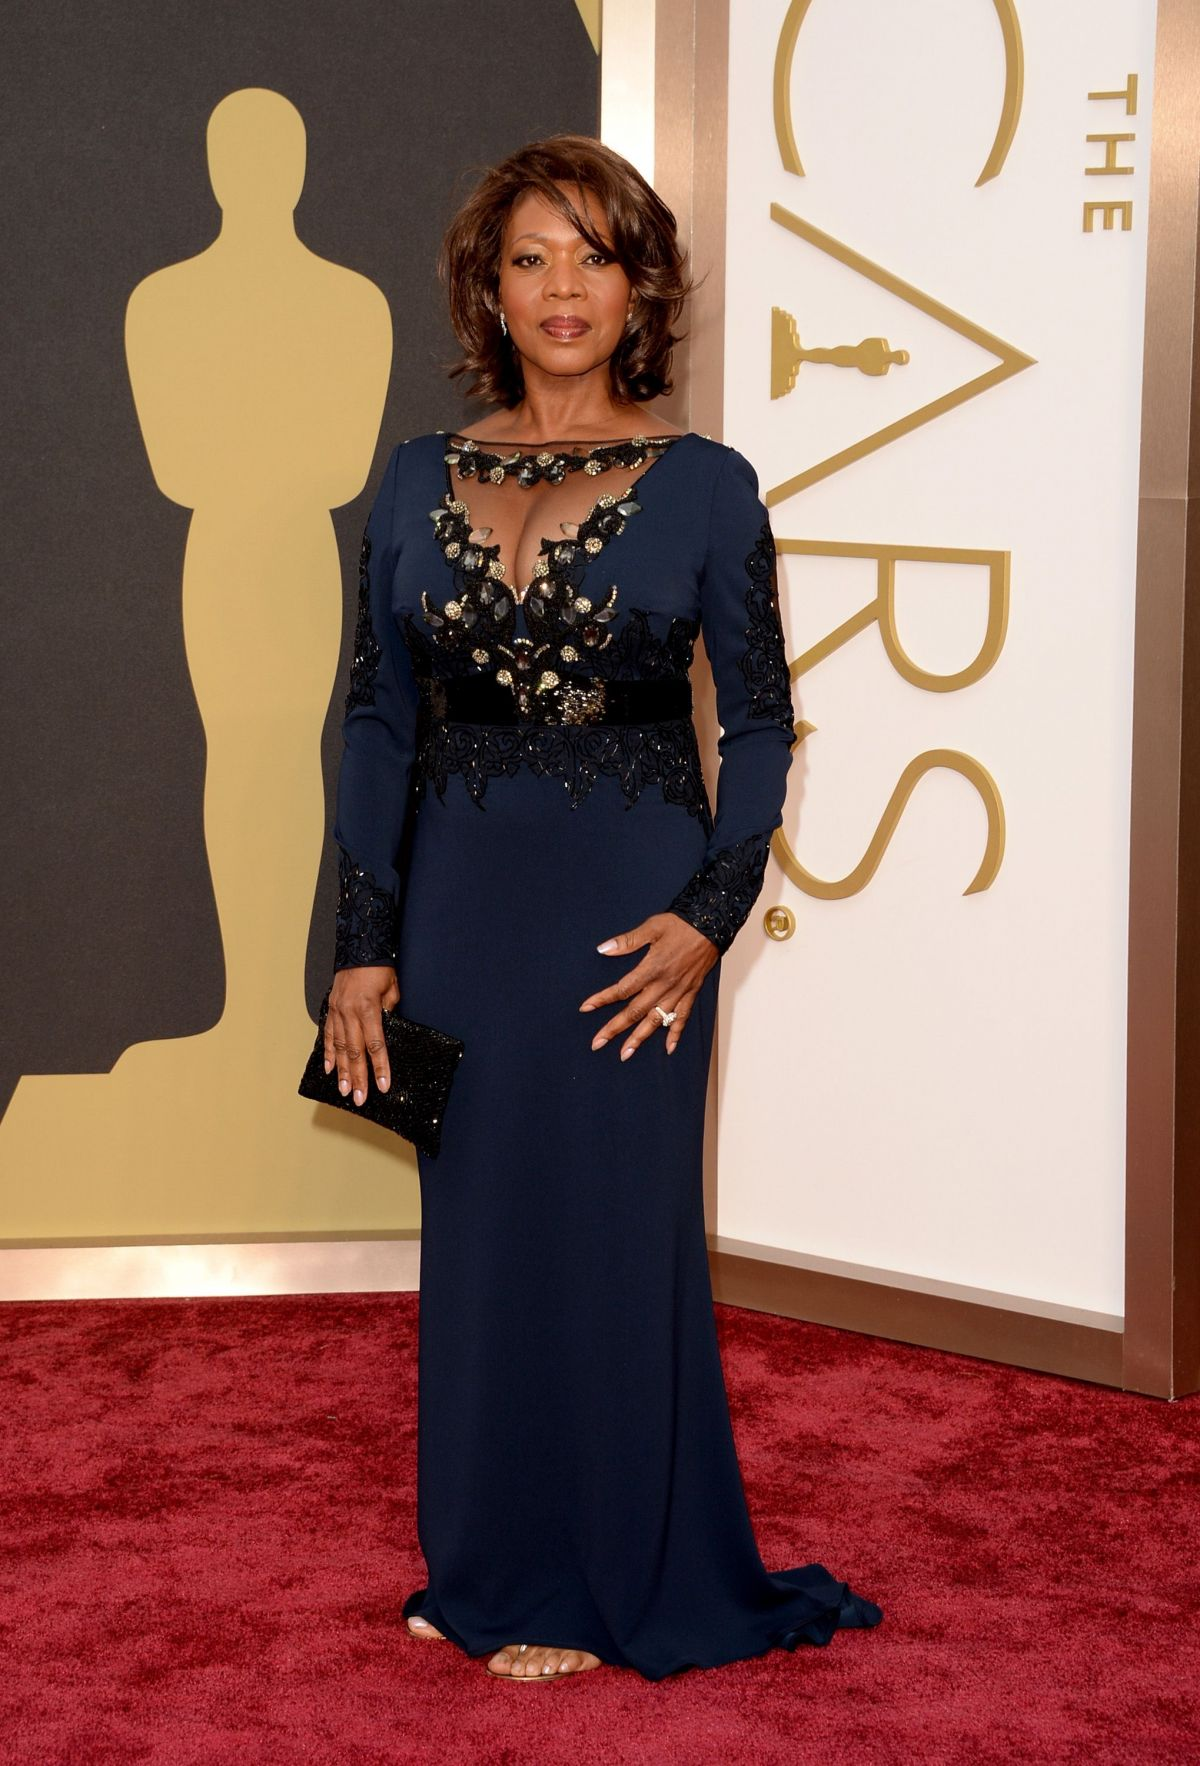 ALFRE WOODARD at 86th Annual Academy Awards in Hollywood